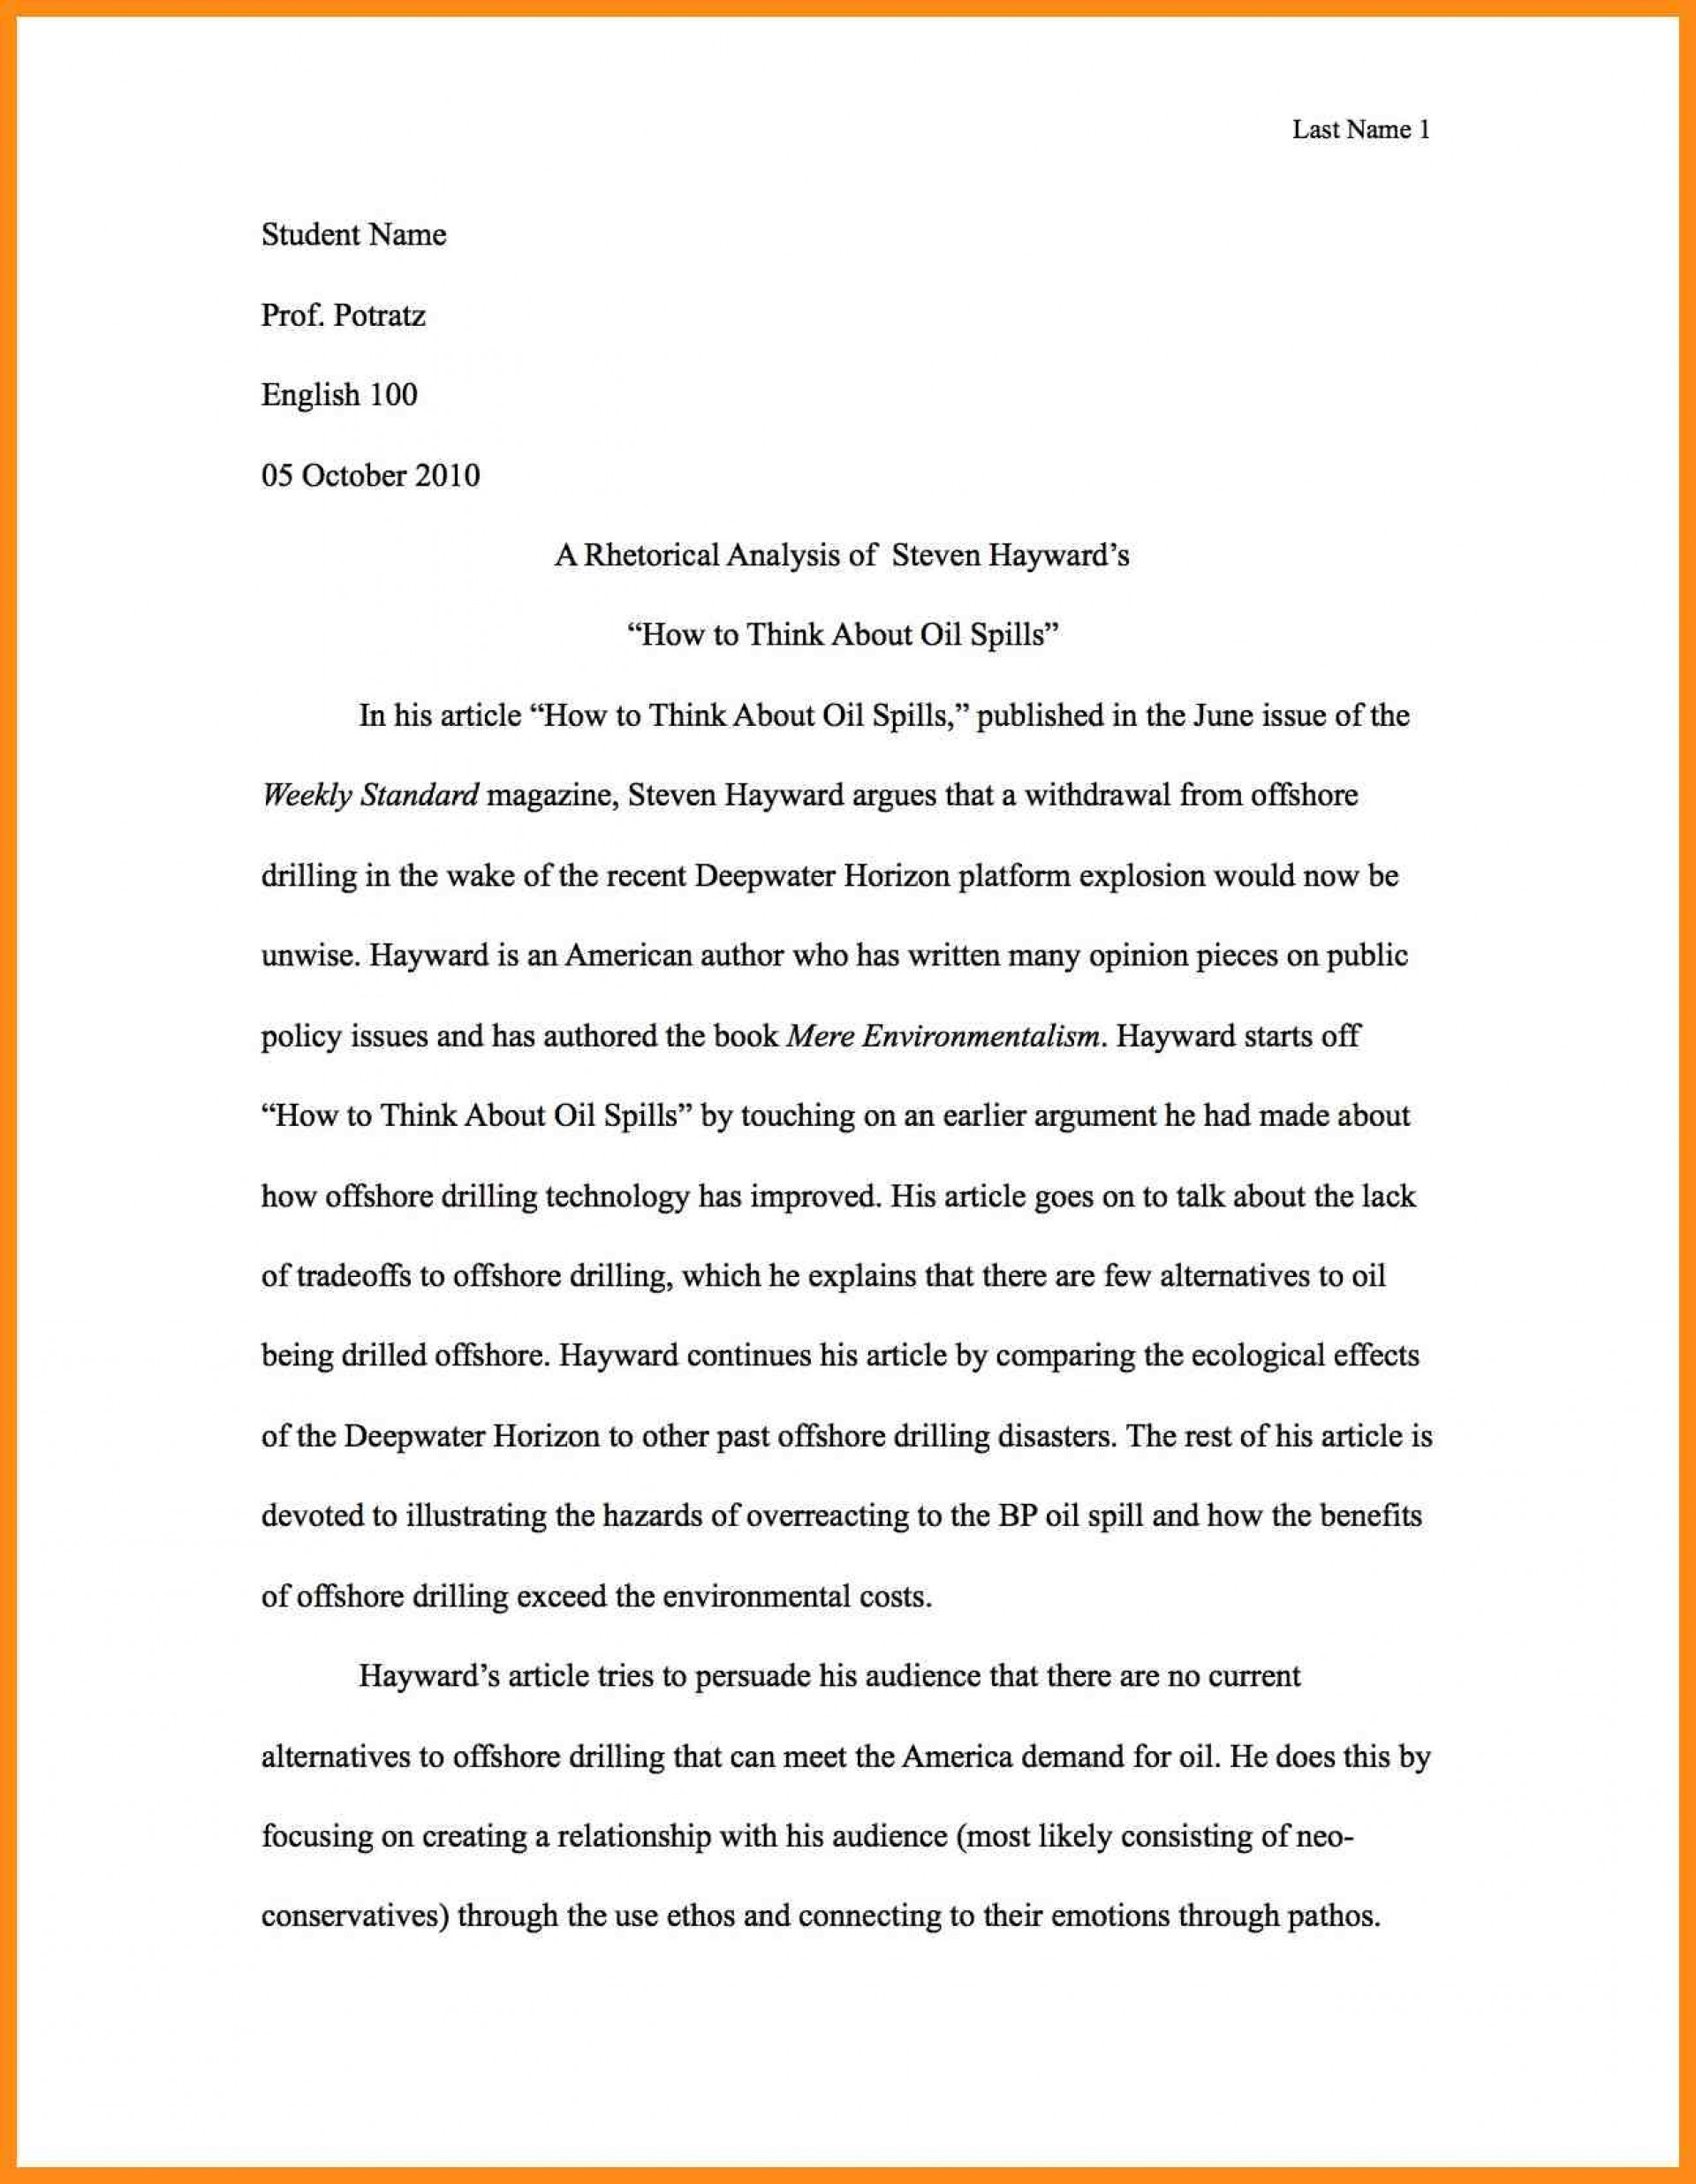 001 Essay Example Rethorical Write Best Rhetorical Analysis Of Using Ethos Pathos And Logos Awful Outline Conclusion Strategies Topics 2018 1920